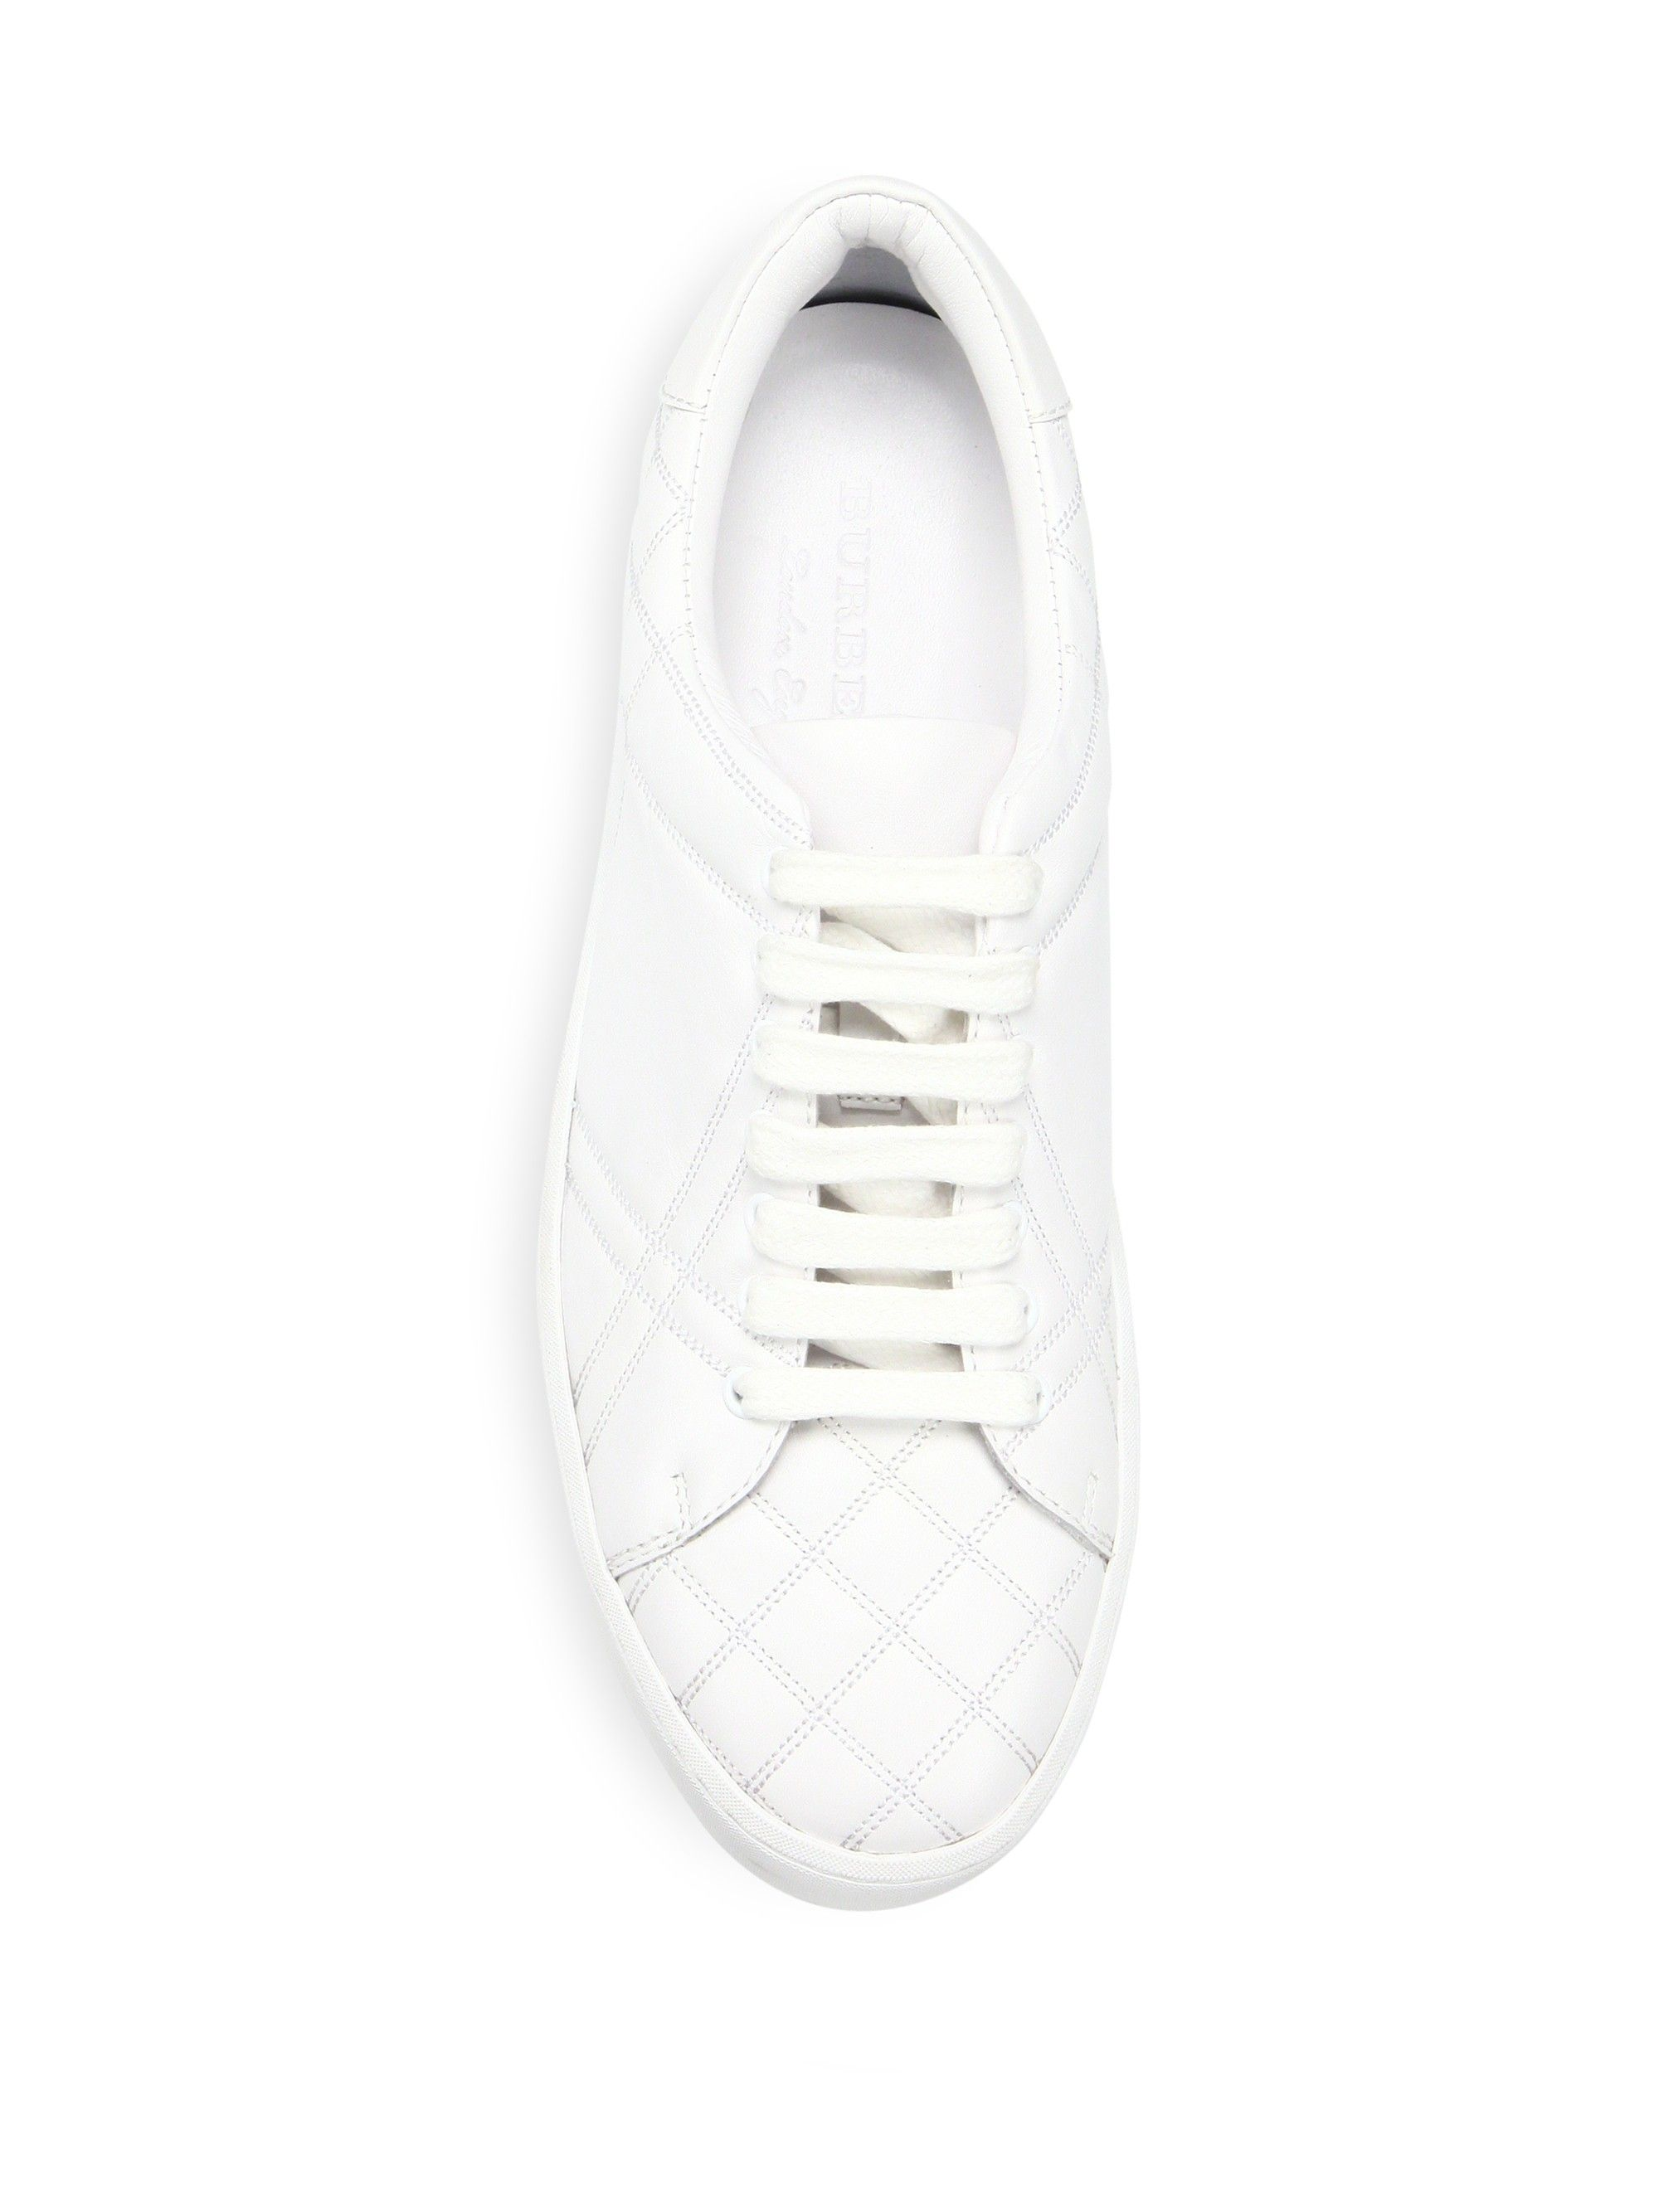 BURBERRY Westford Quilted Leather Check Sneakers. burberry burberry burberry Zapatos fe84b1